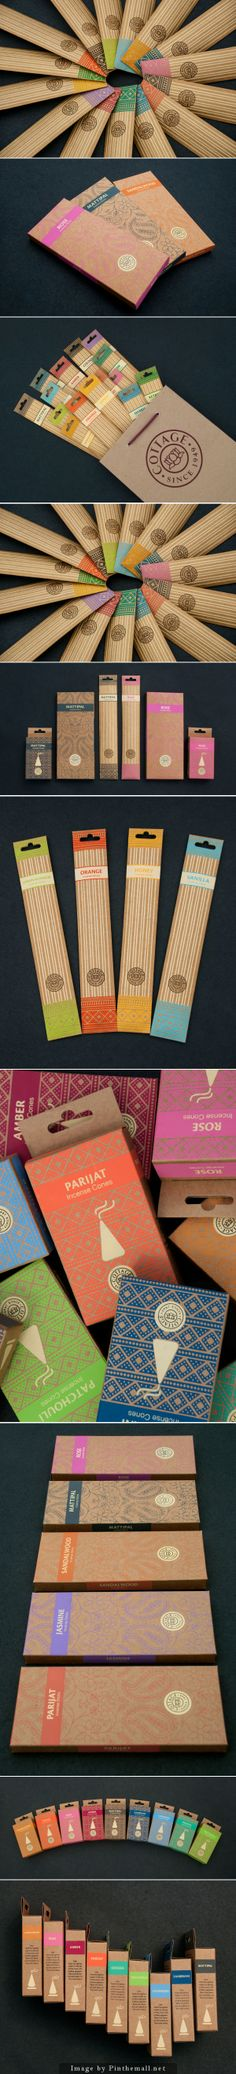 Cottage Incense: Heritage Range